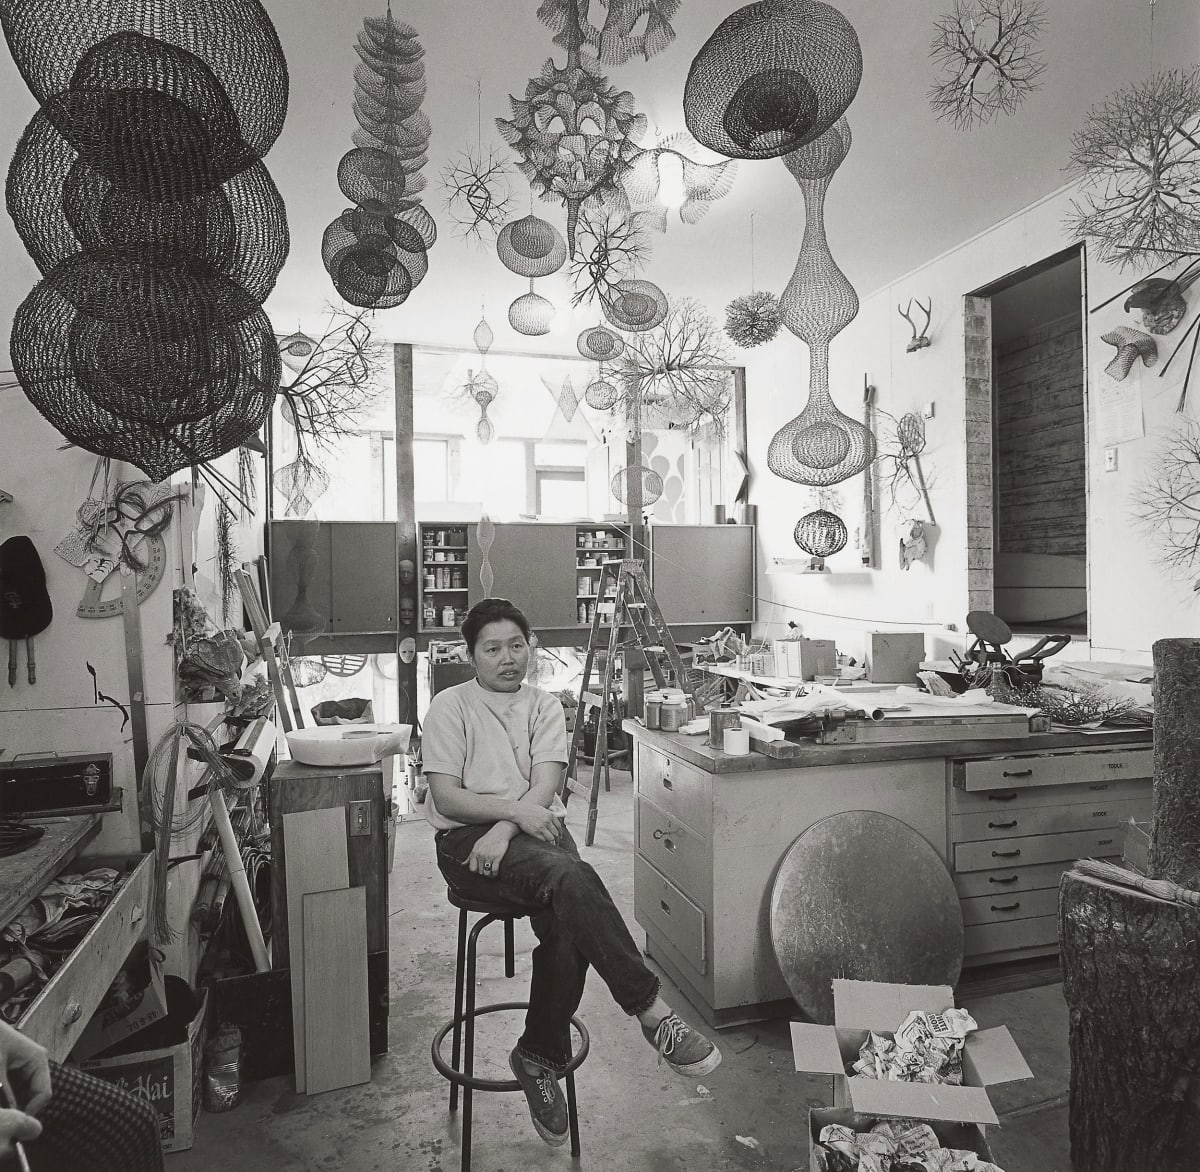 Ruth Asawa in Her Studio, San Francisco, 1969 Ruth Asawa and Ron were good friends, living across the Bay from each other in the San Francisco Bay Area. this photograph of Ruth was taken in her studio in San Francisco.